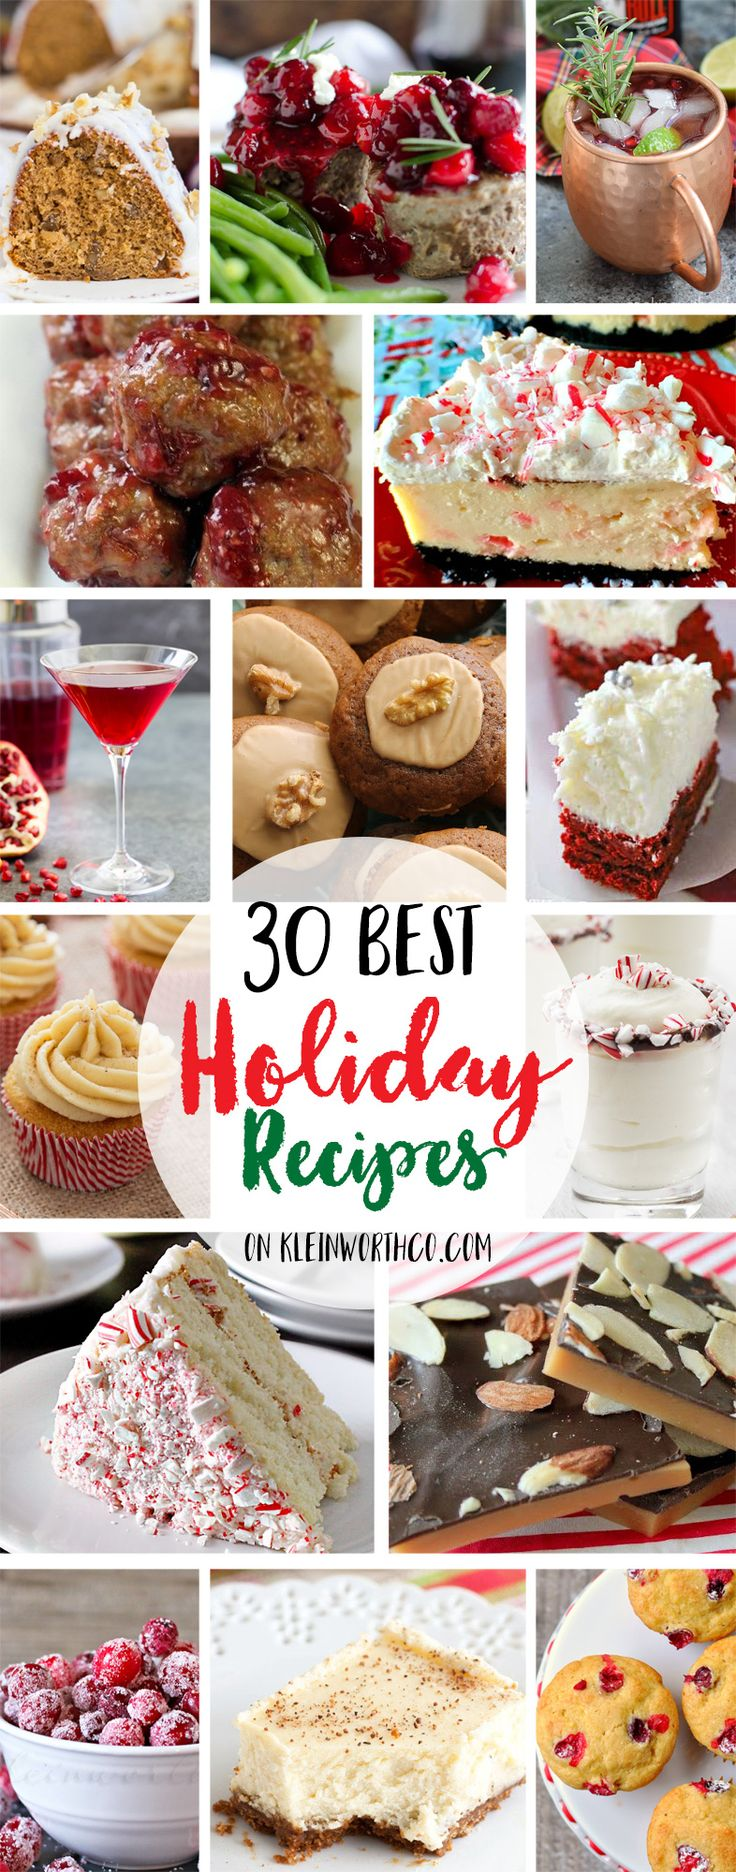 These 30 Best Holiday Recipes for gift giving, holiday parties & family gatherings will have everyone full of smiles. Christmas recipes via @KleinworthCo